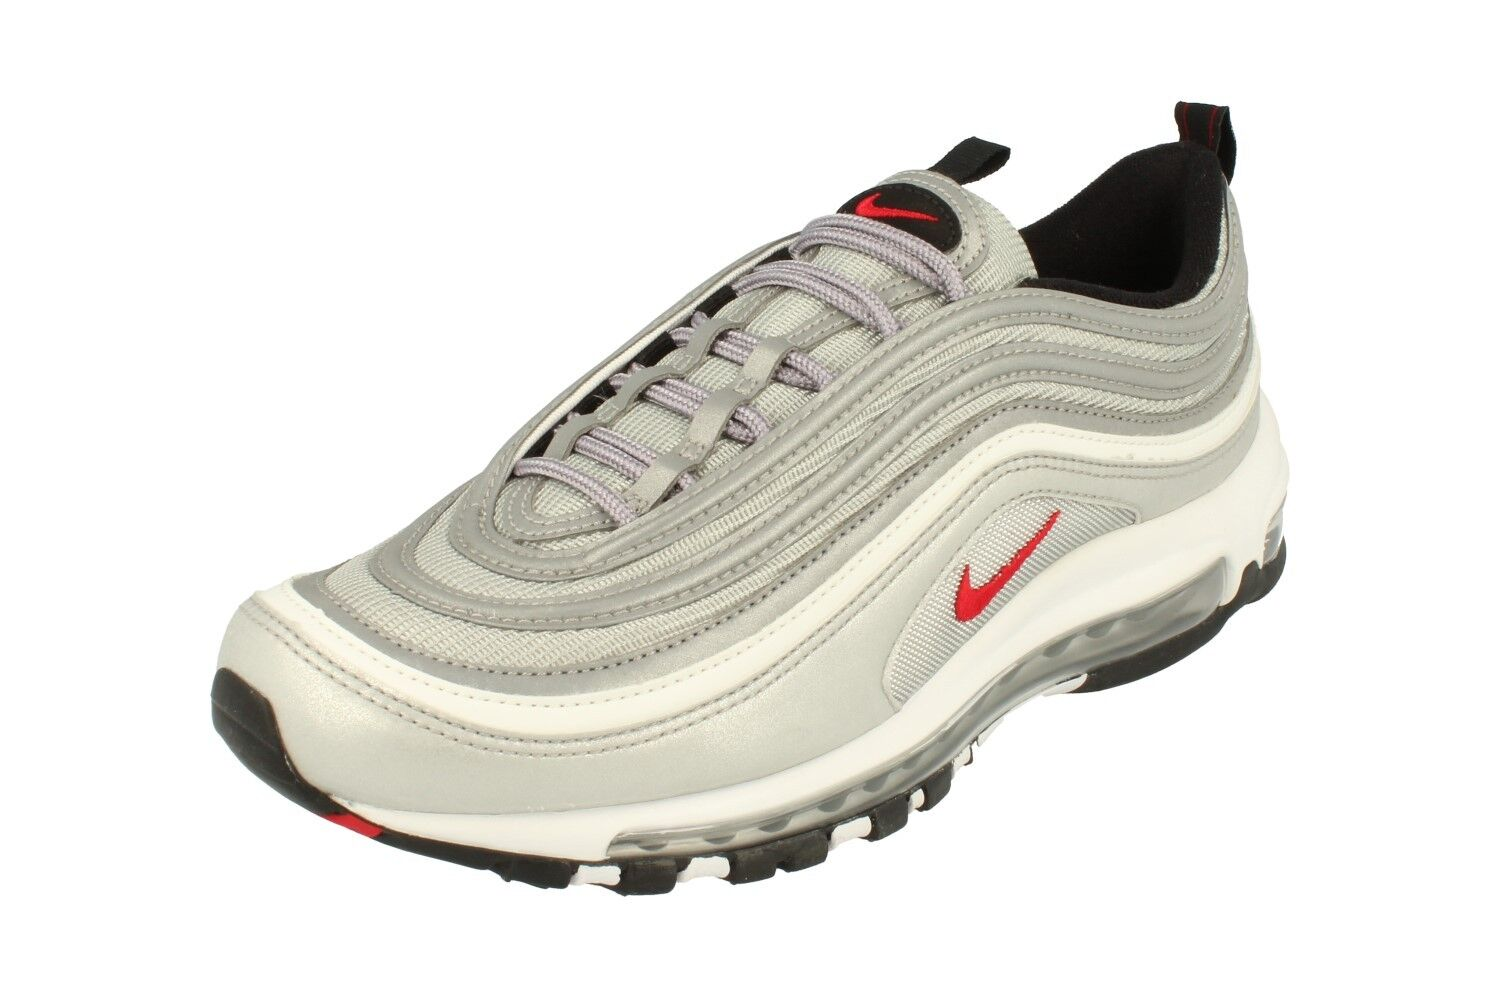 38b1cf17e6 Nike Air Max 97 OG QS Silver Bullet Metallic/red Size 10.5 Shoes ...